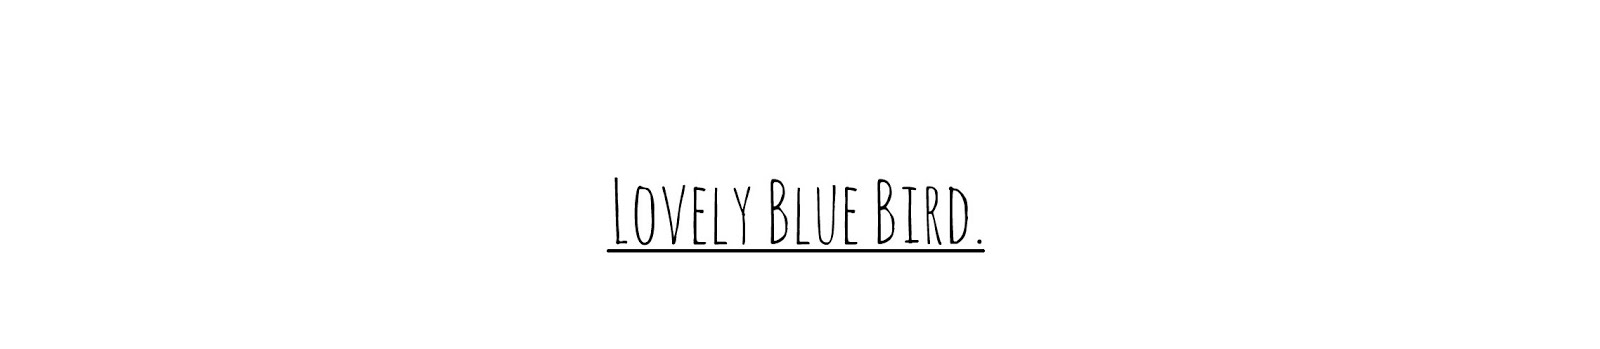 Lovely Blue Bird